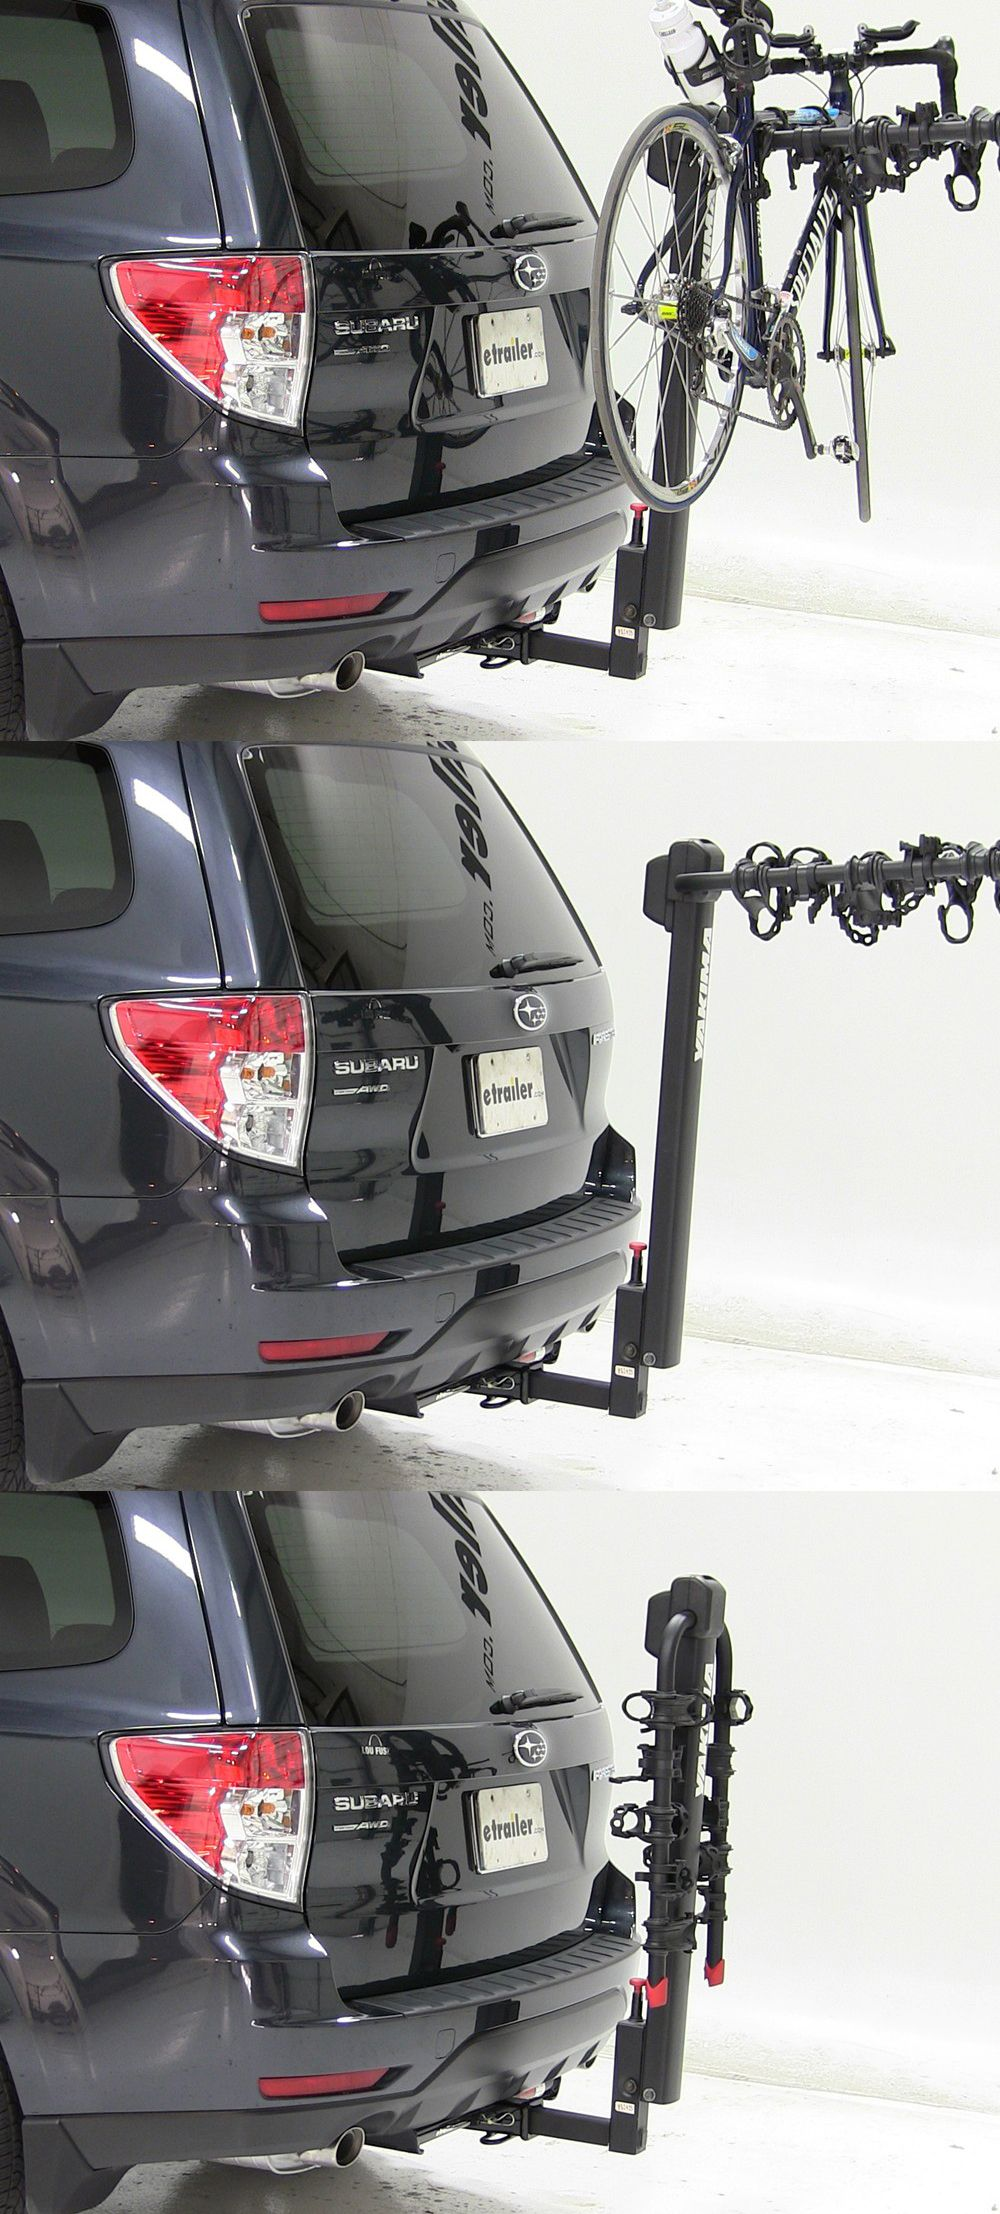 acura and trailer rack bmw honda fit examples mdx hitch installs class bike